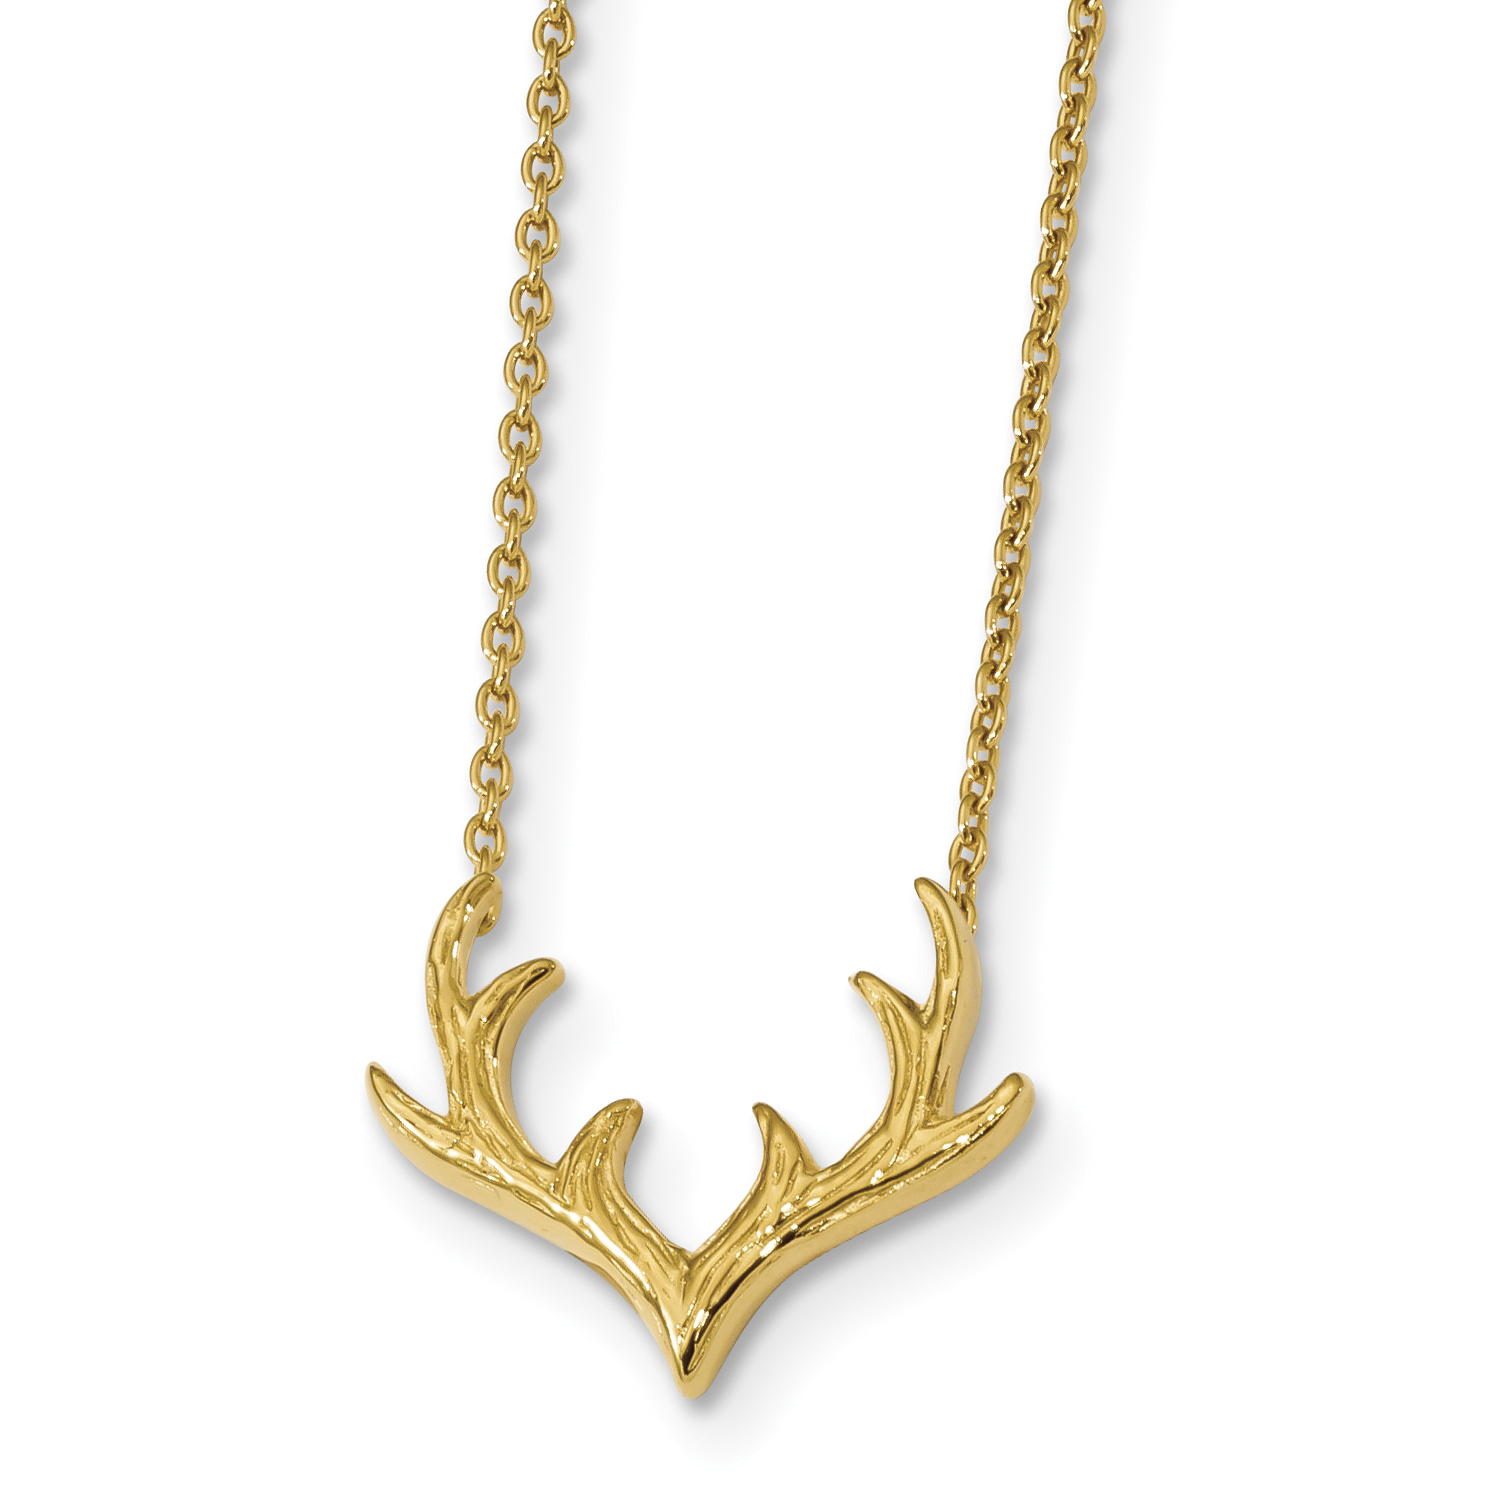 Sterling Silver Gold-plated 16.5in w/1.25in ext Antler Necklace | Weight: 2.99 grams, Length: 16.5mm, Width: mm